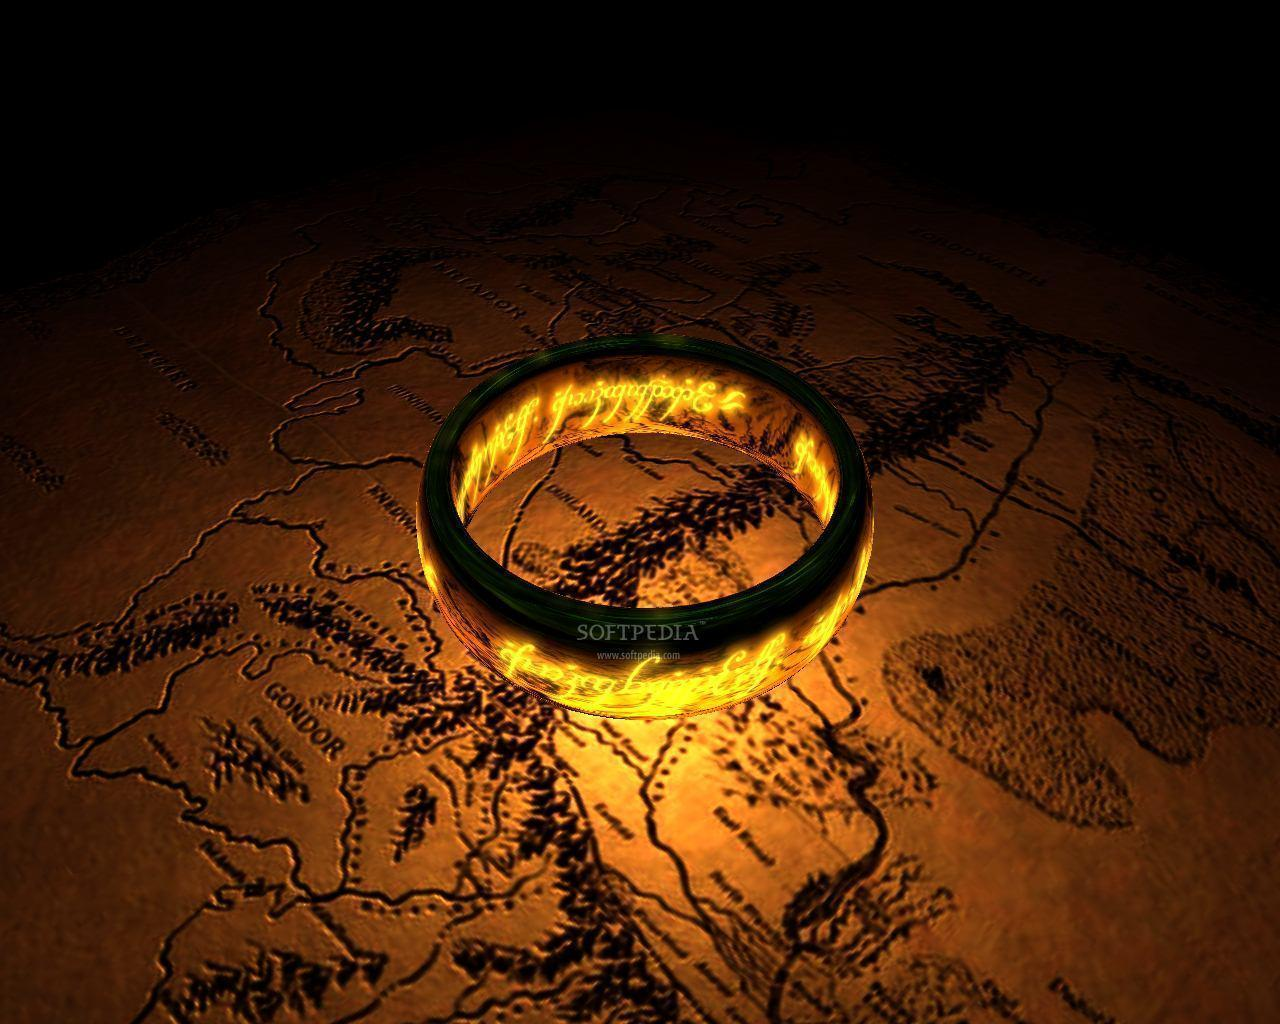 Lord Of The Rings Iphone Wallpapers 21392 Wallpapers